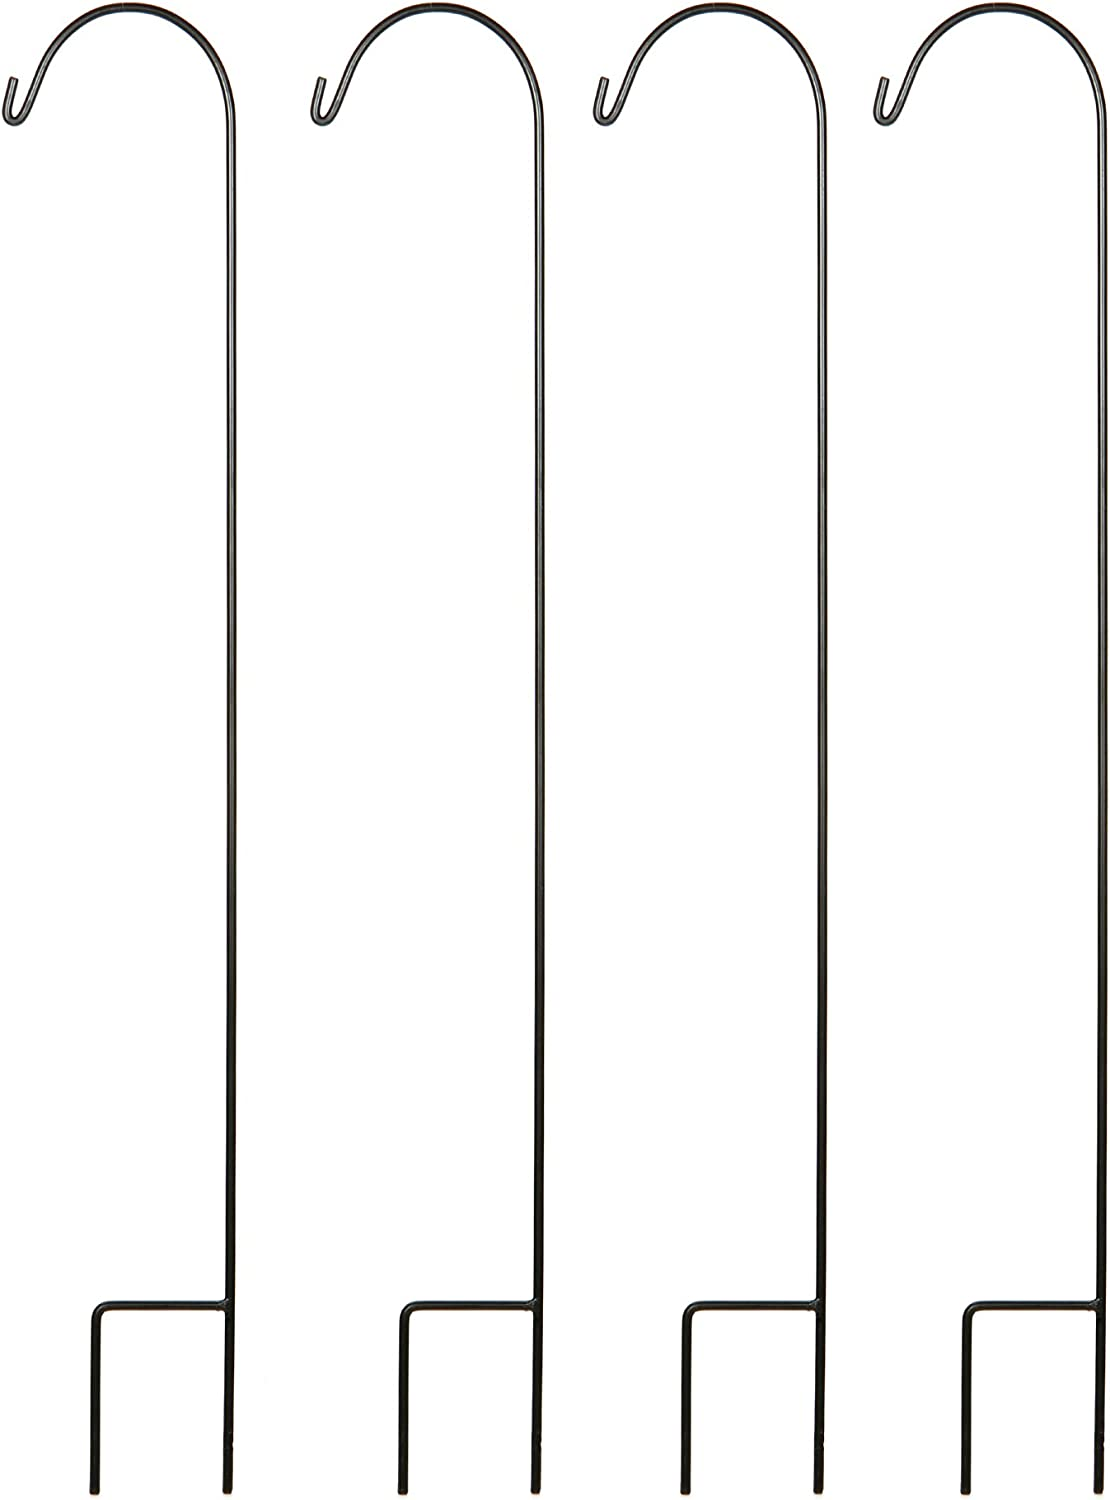 Hosley Set of 4 Shepherd Hooks 33 Inches High Ideal for Solar LED Lights Bird Feeders Mason Jars Plant Hangers Lanterns Garden Stakes Gift for Weddings House Warming Special Events O3